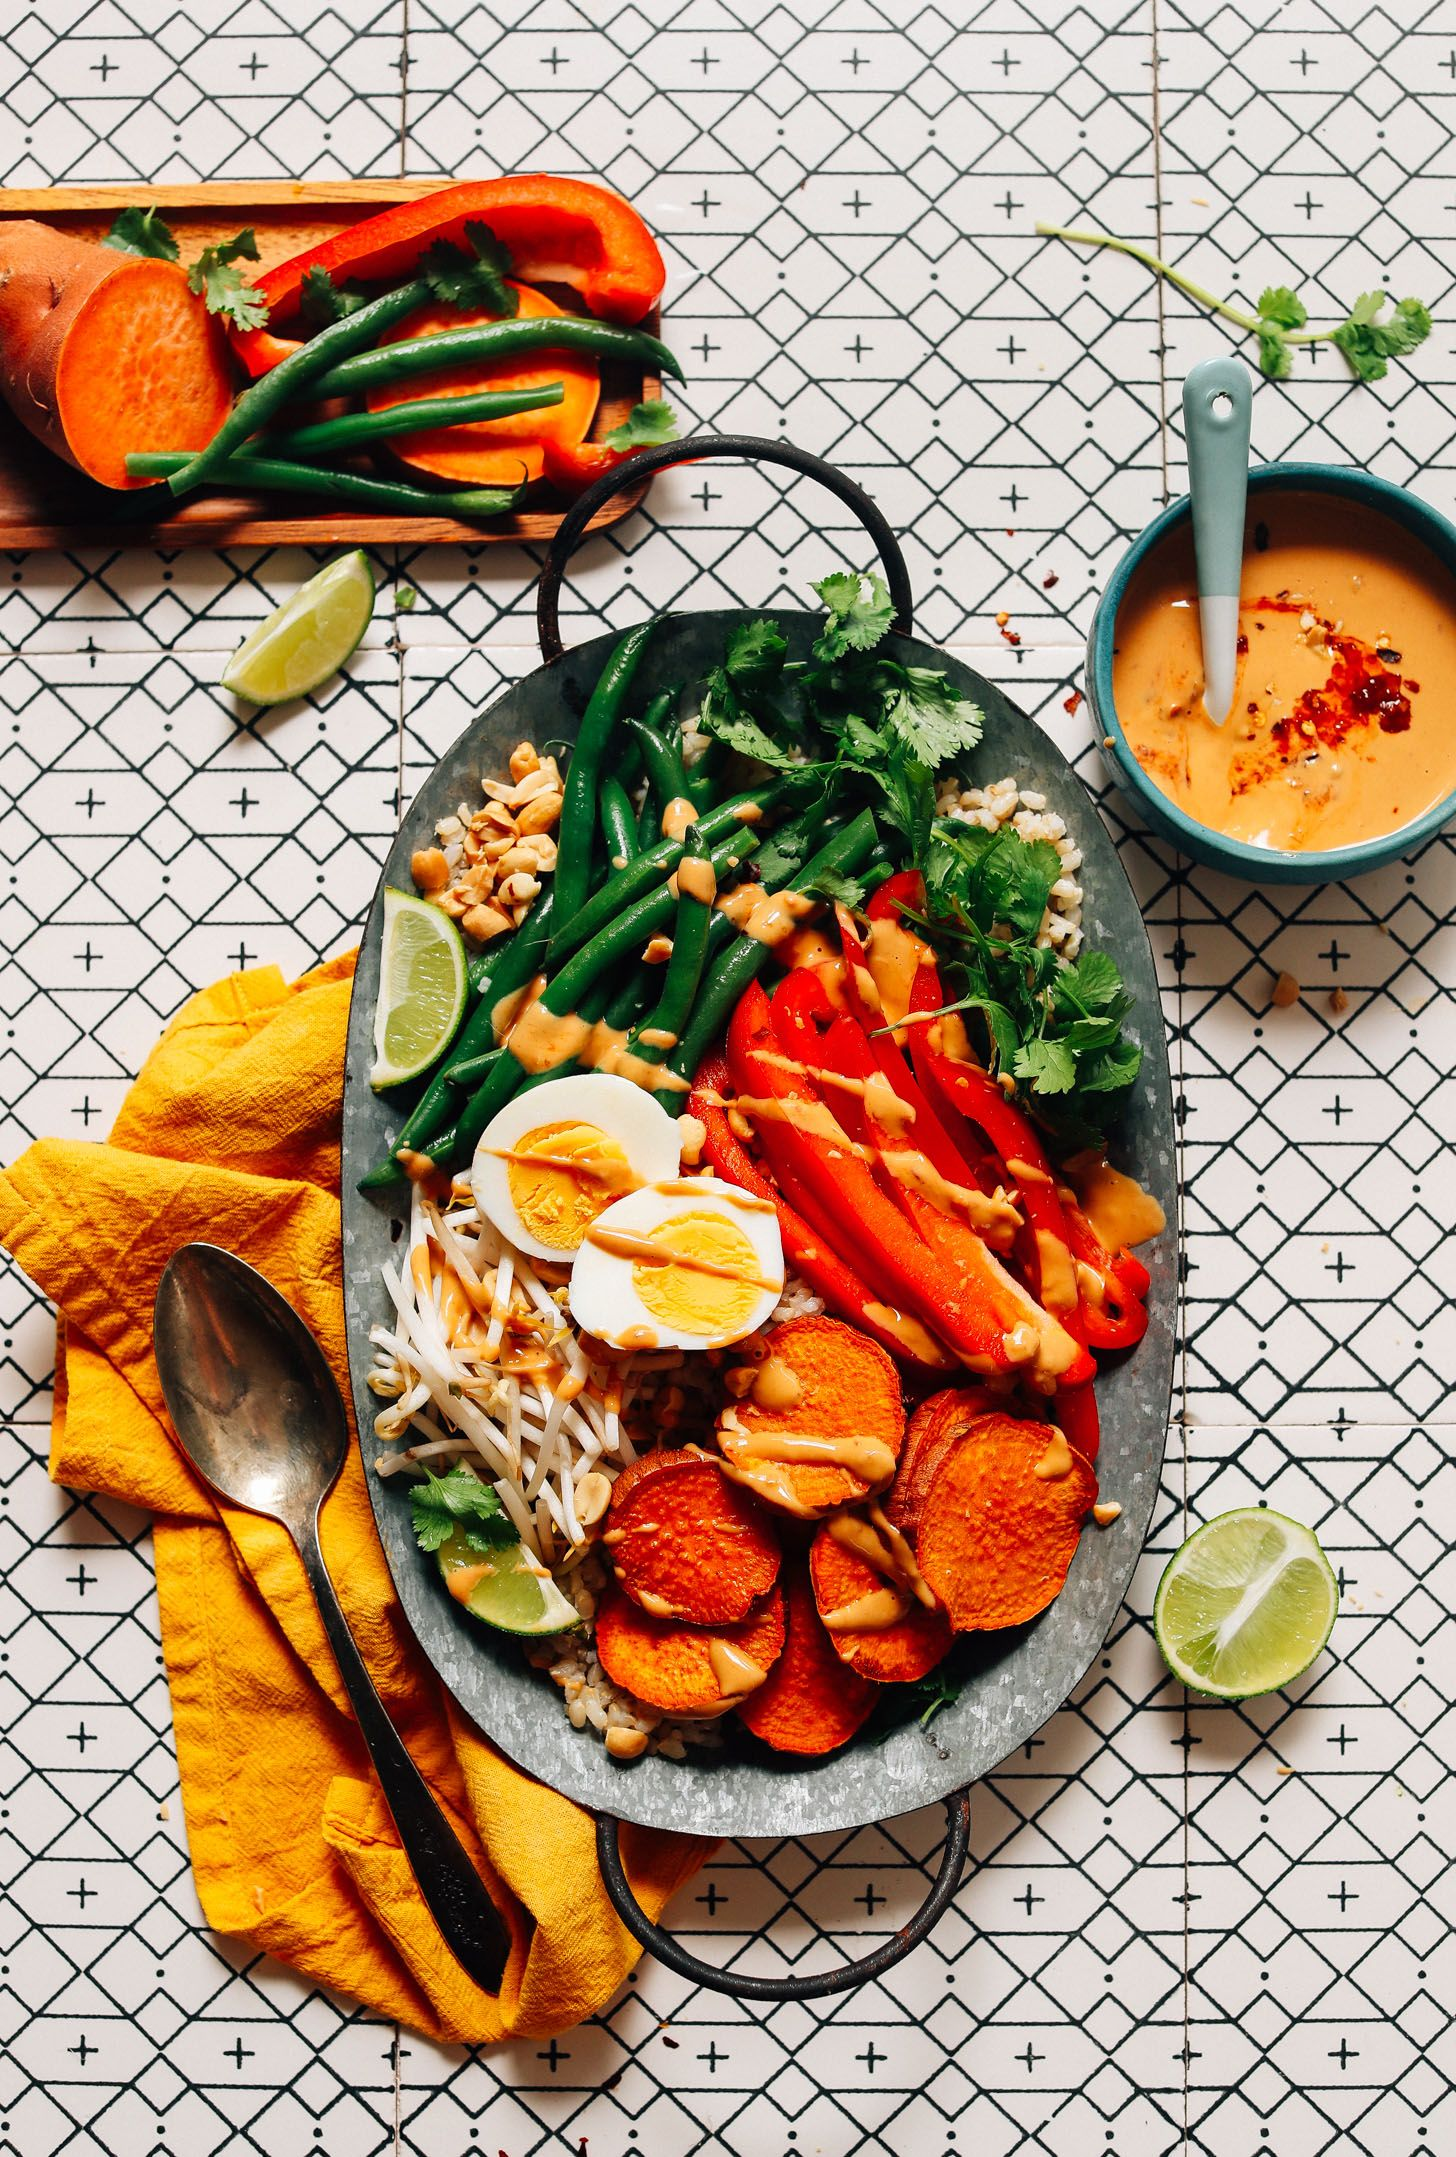 Gado Gado with Spicy Peanut Sauce FRESH and Delicious Gado Gado with Roasted and Fresh Veggies and Spicy Peanut Sauce! Simple ingredients, ready in 30 minutes!